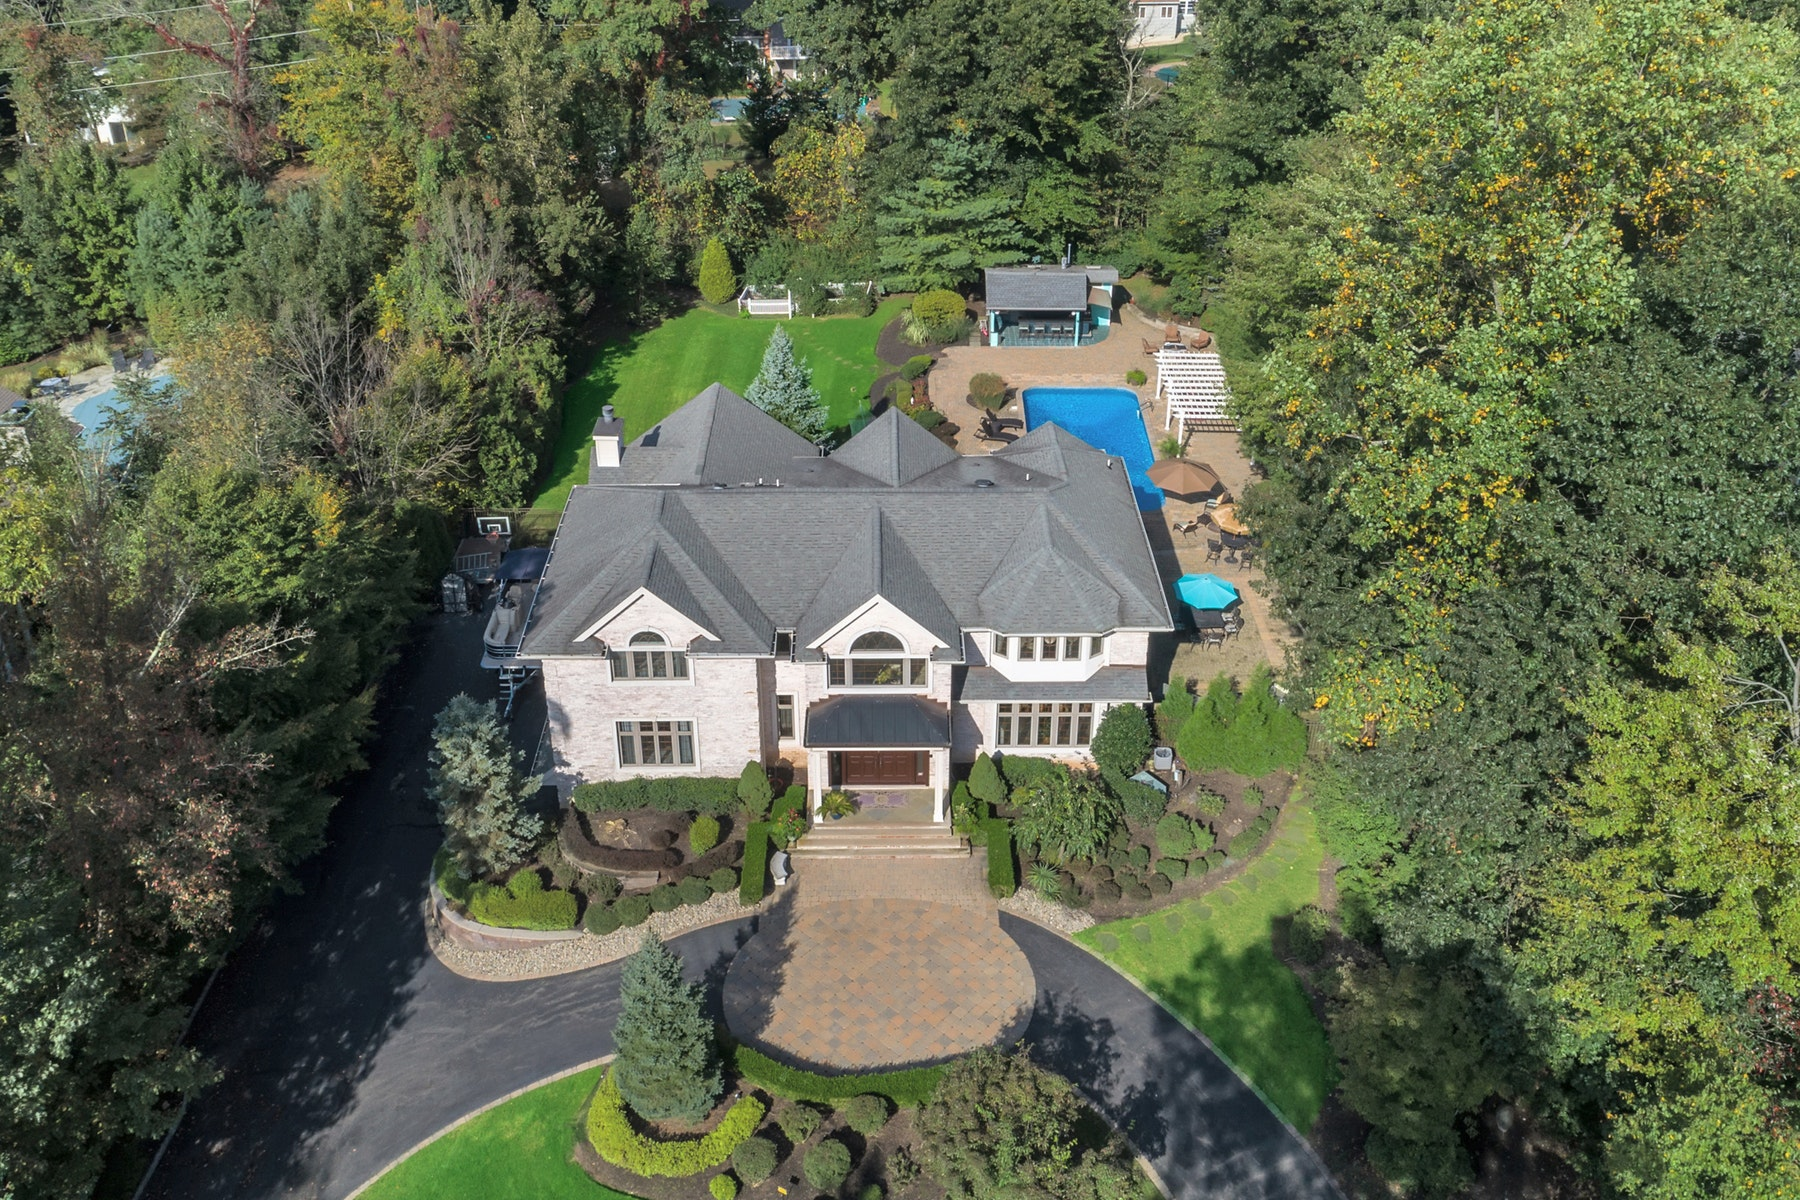 Single Family Homes for Sale at Classic Manor Style Home 41 Stevenson Ln Upper Saddle River, New Jersey 07458 United States